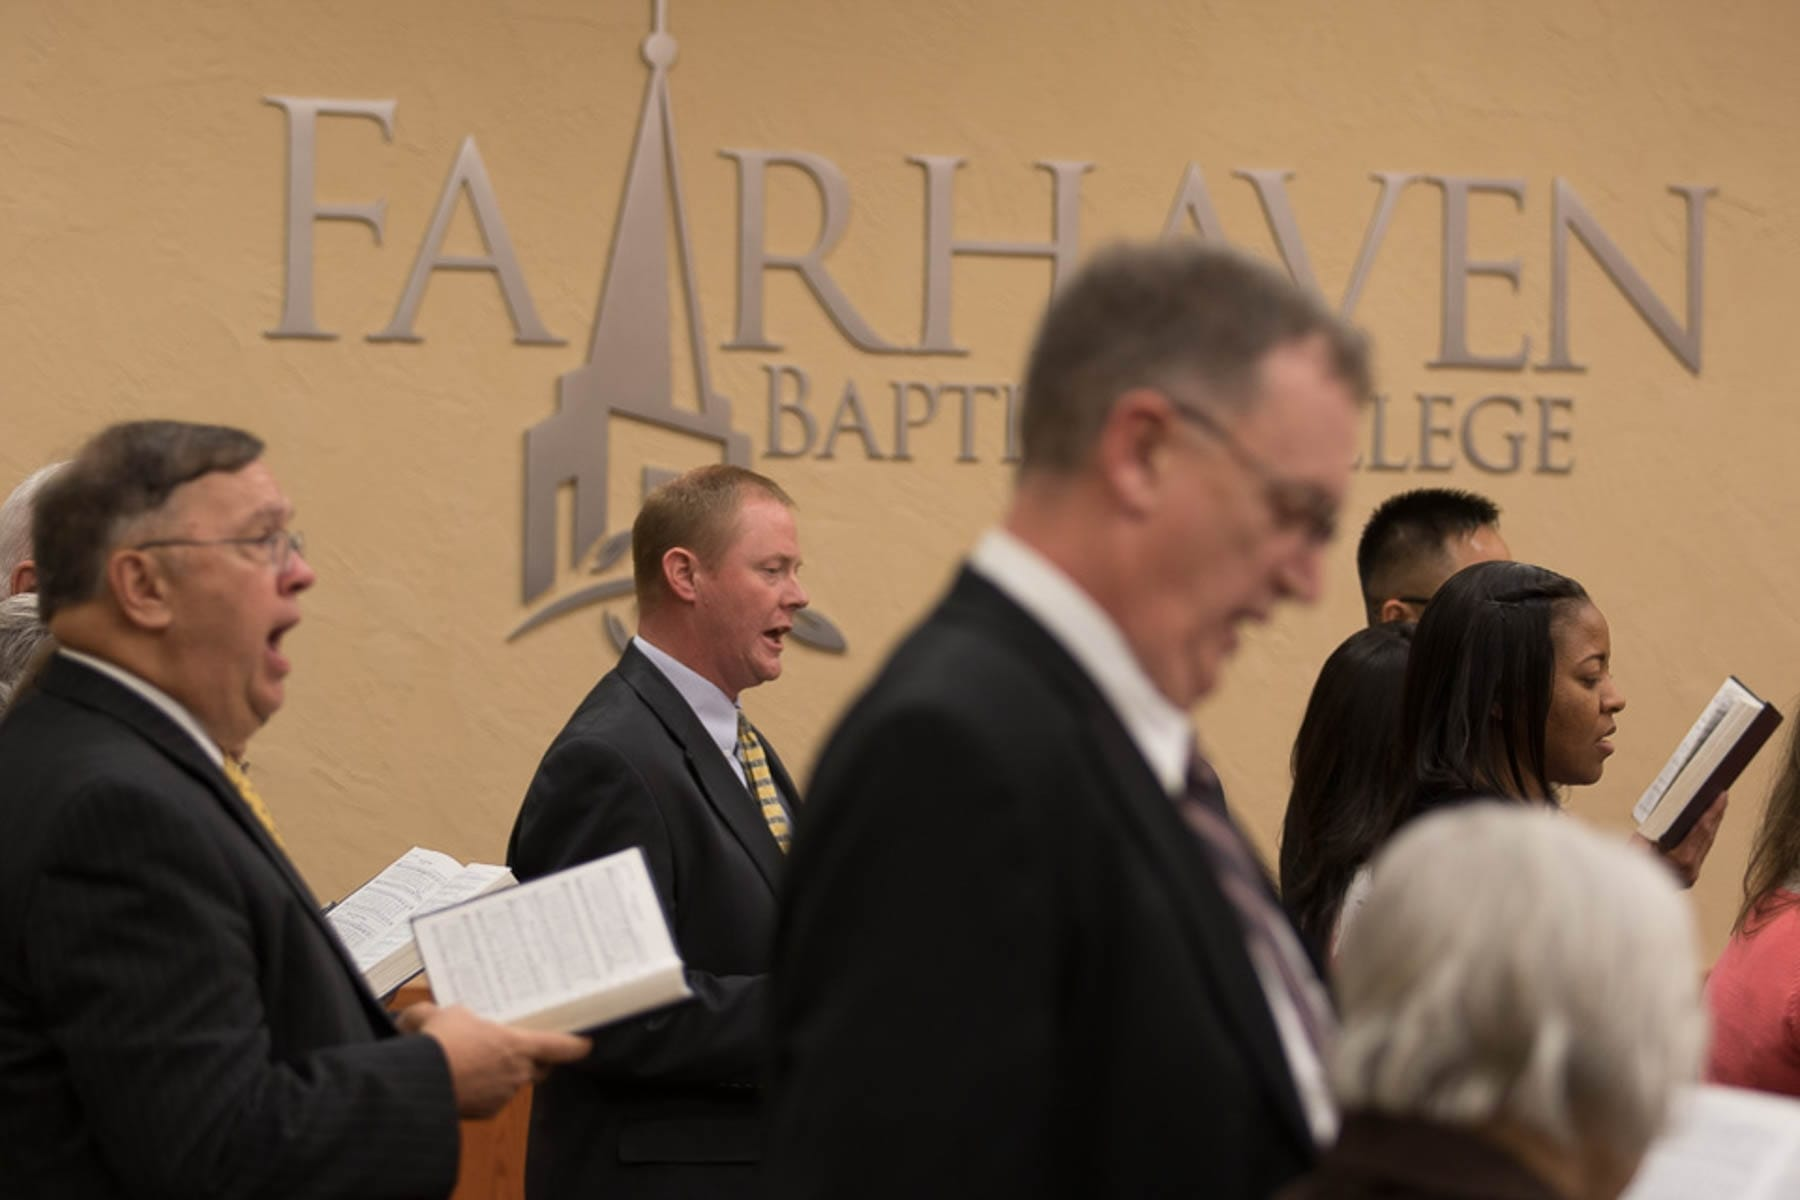 Fairhaven Baptist Church Sustainers' Banquet 2016 (6 of 15)